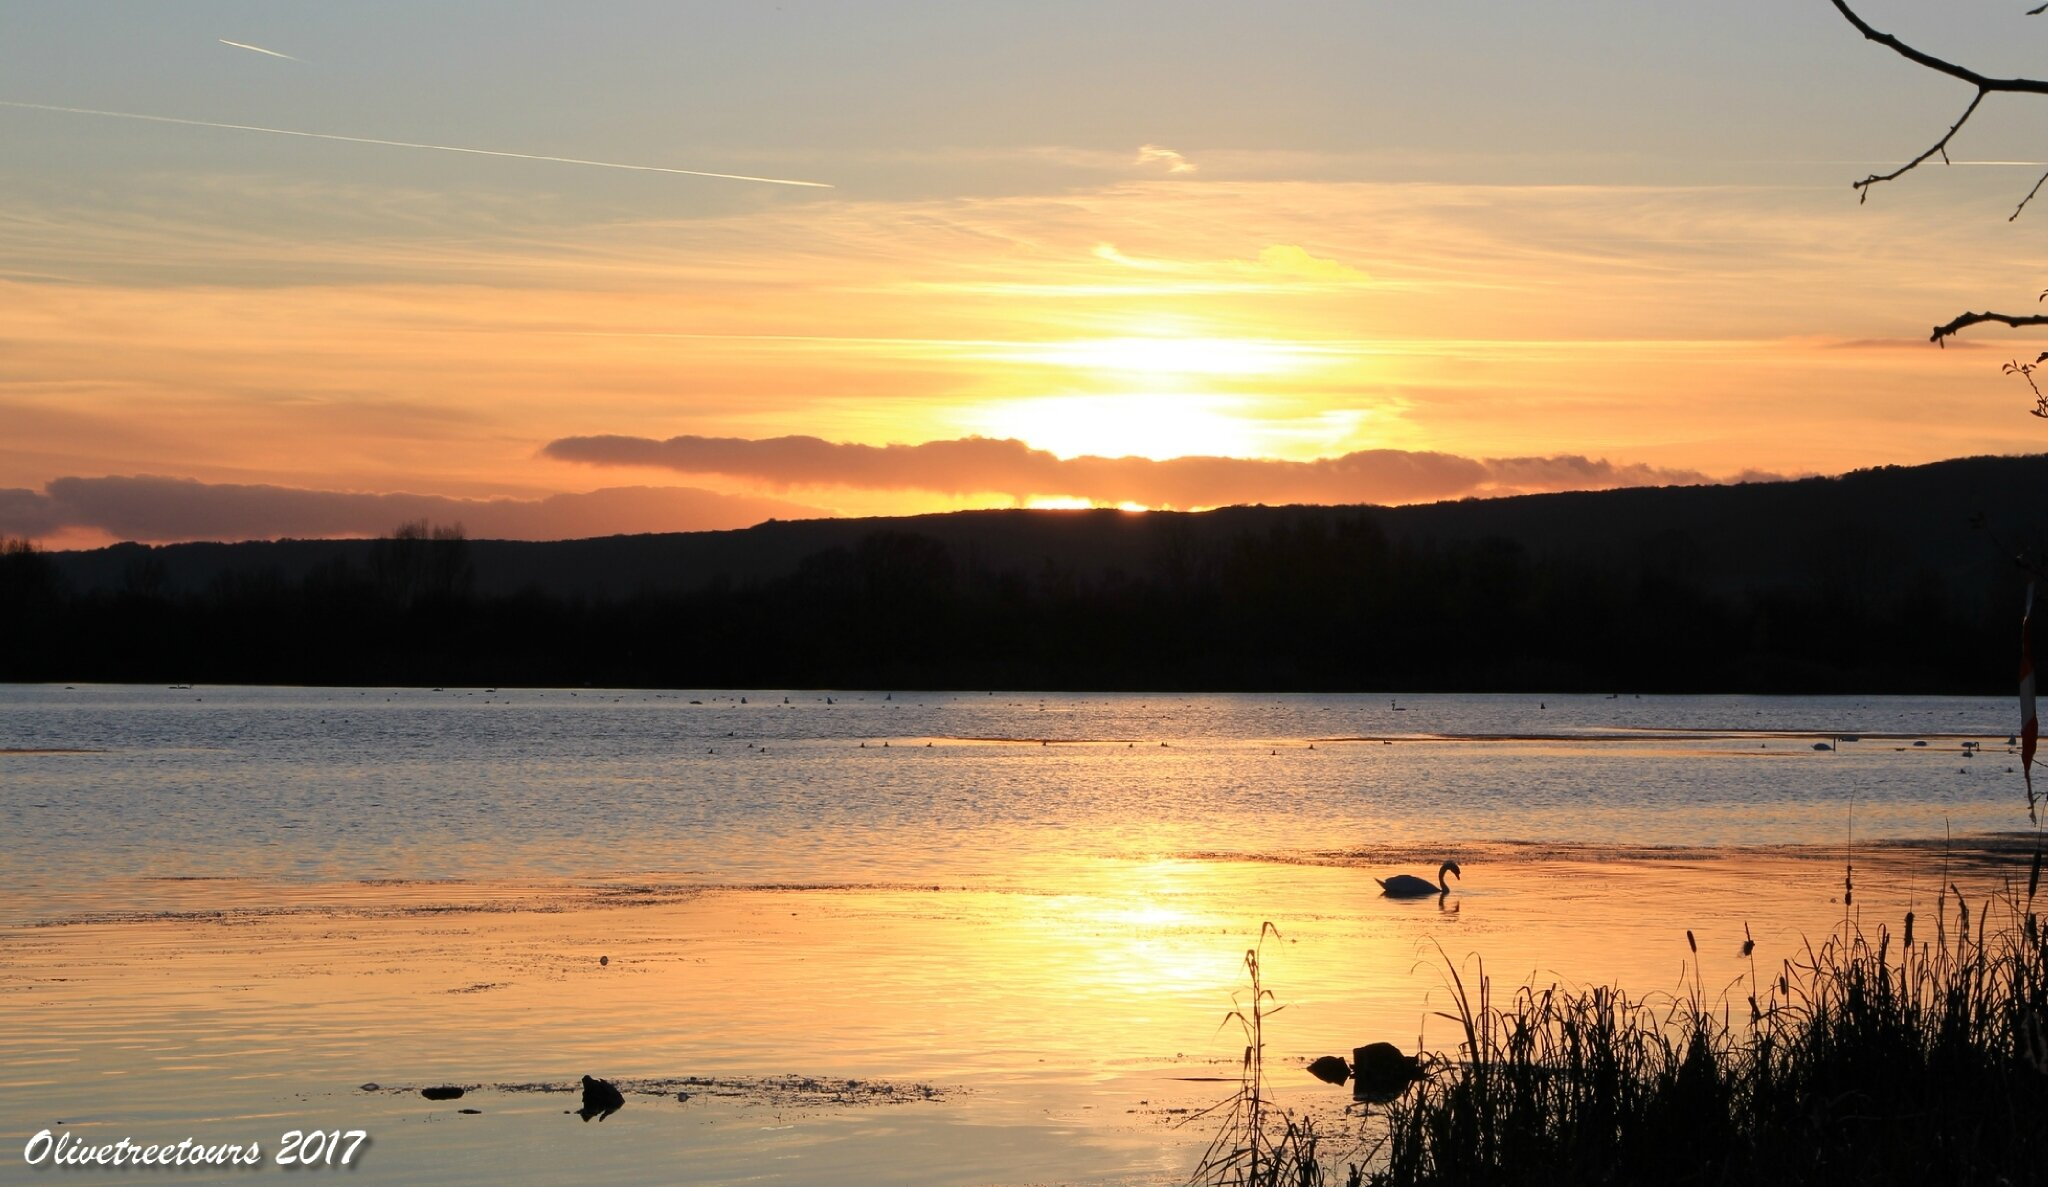 Le lac de Madine en fin de journée / The Lake of Madine at the end of the day